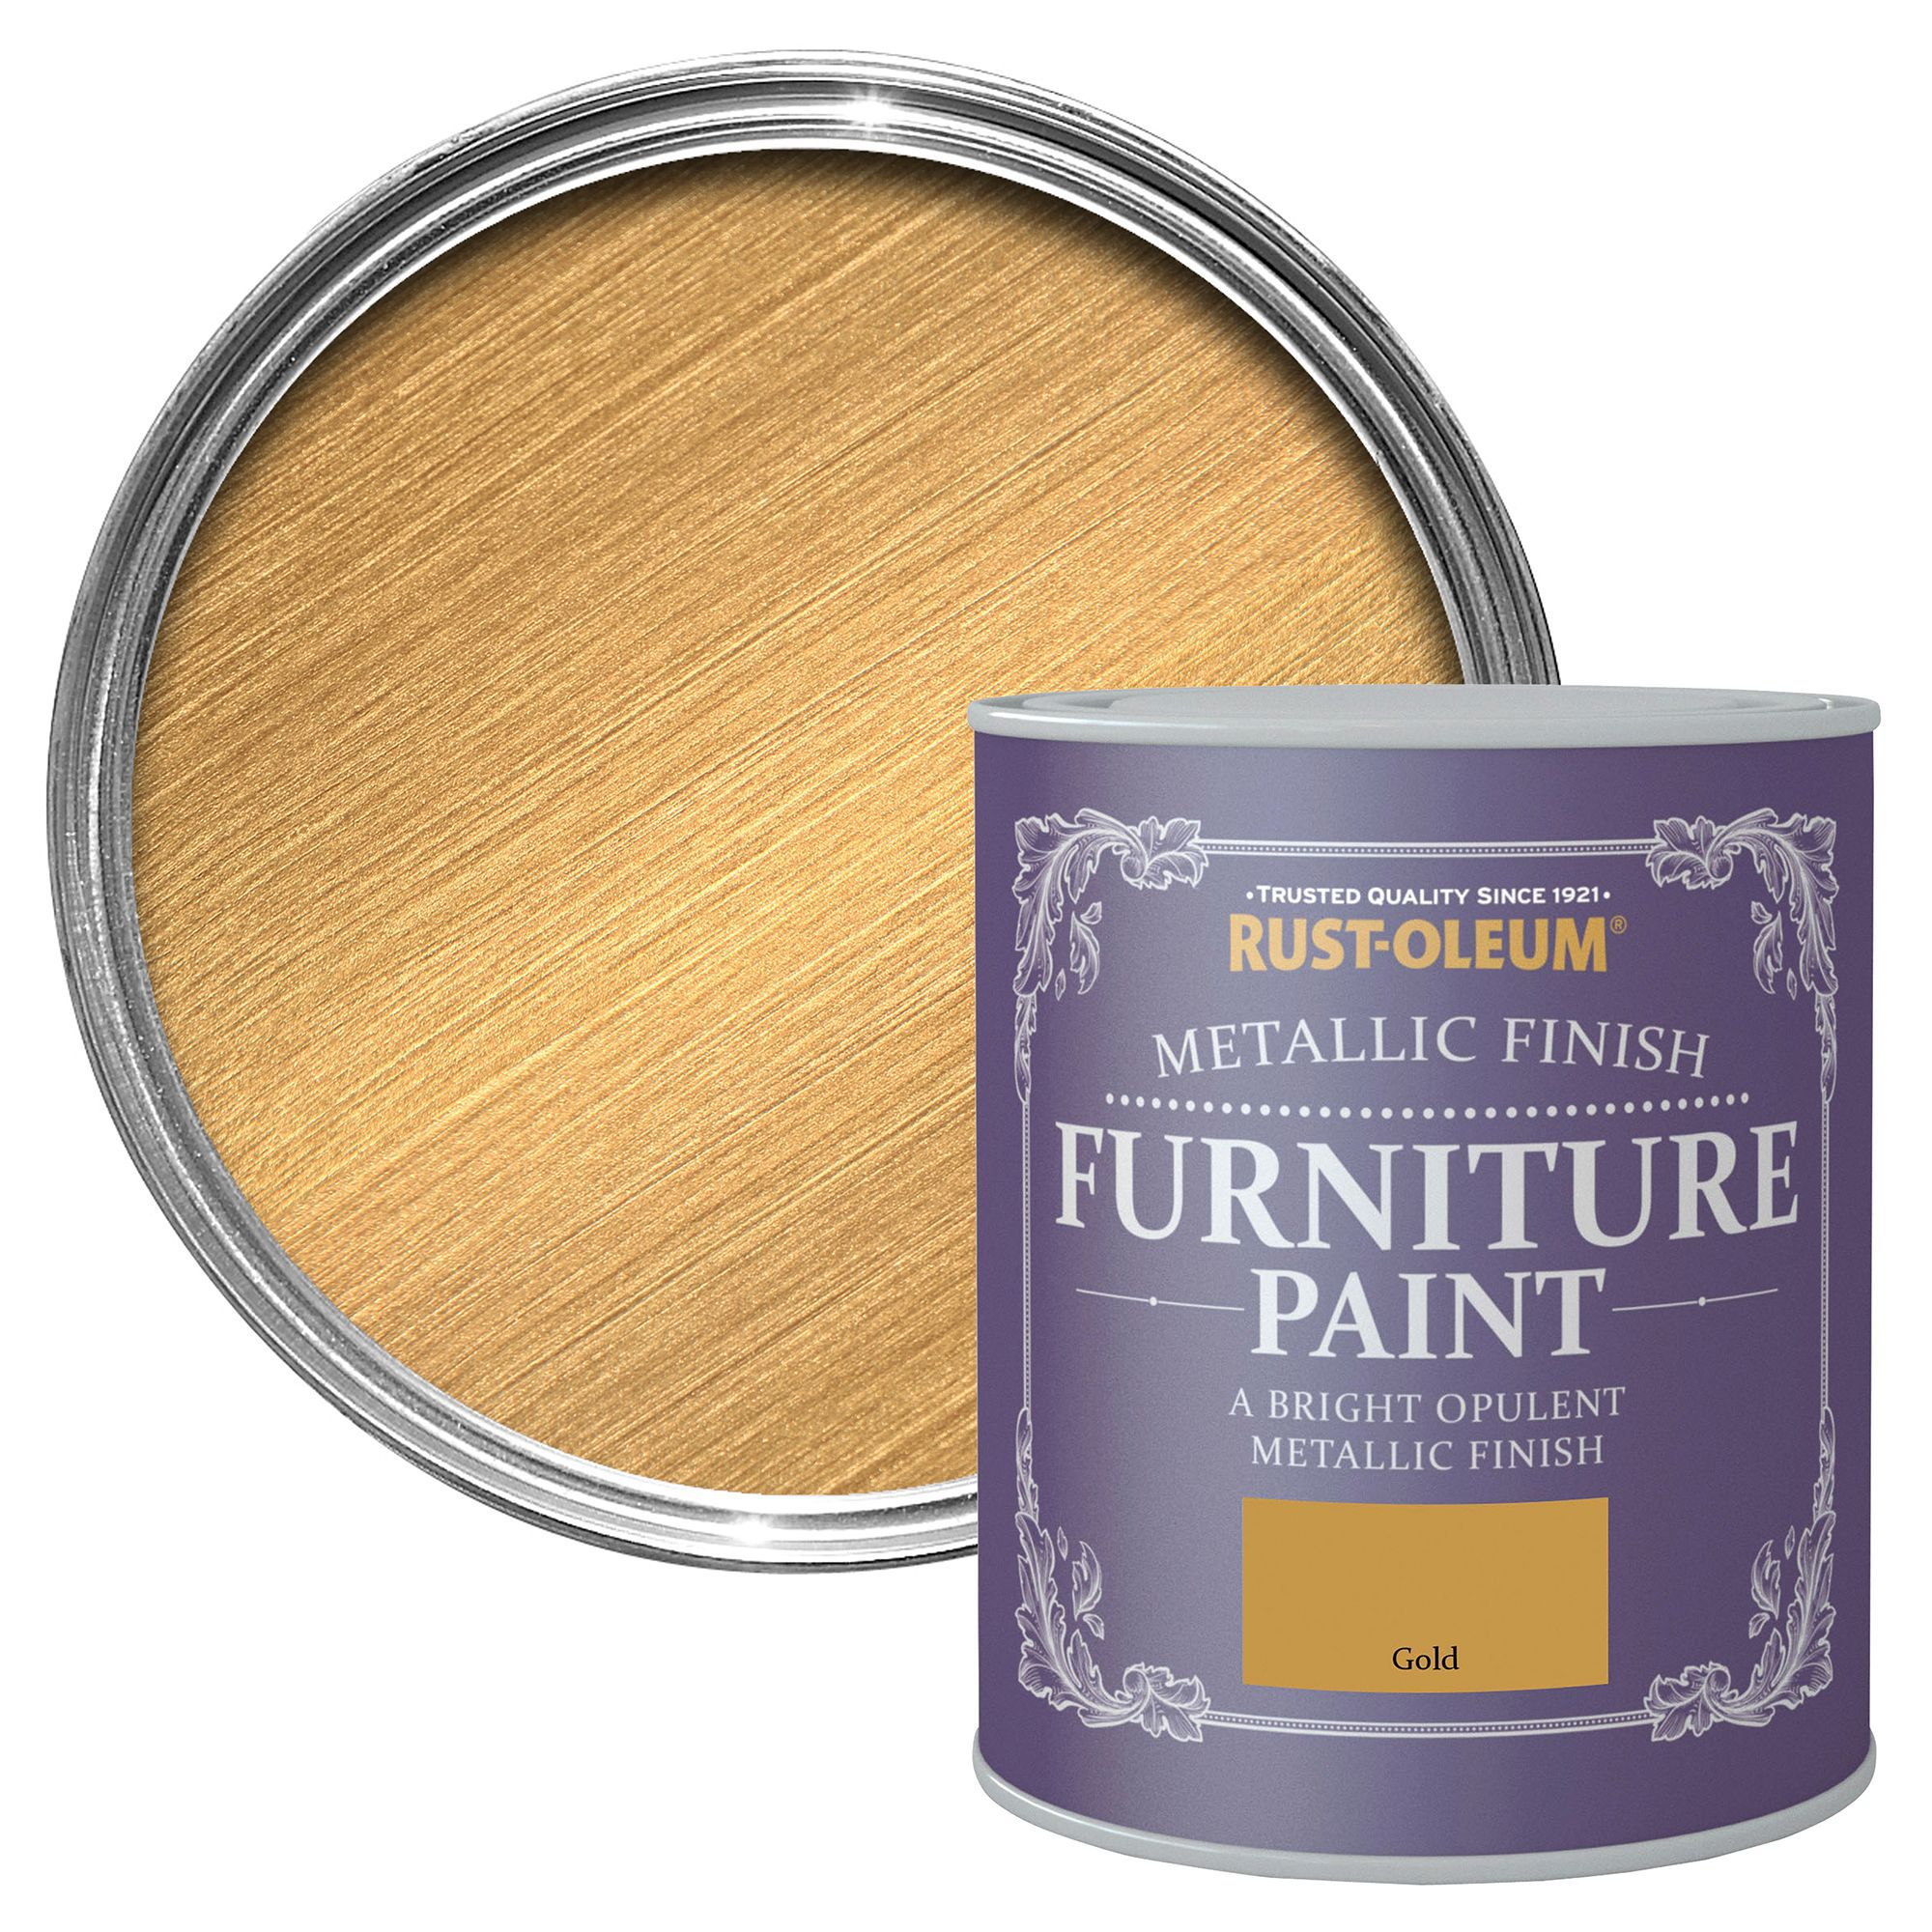 Rust-oleum Rust-oleum Gold Metallic Metallic Furniture Paint 750 Ml